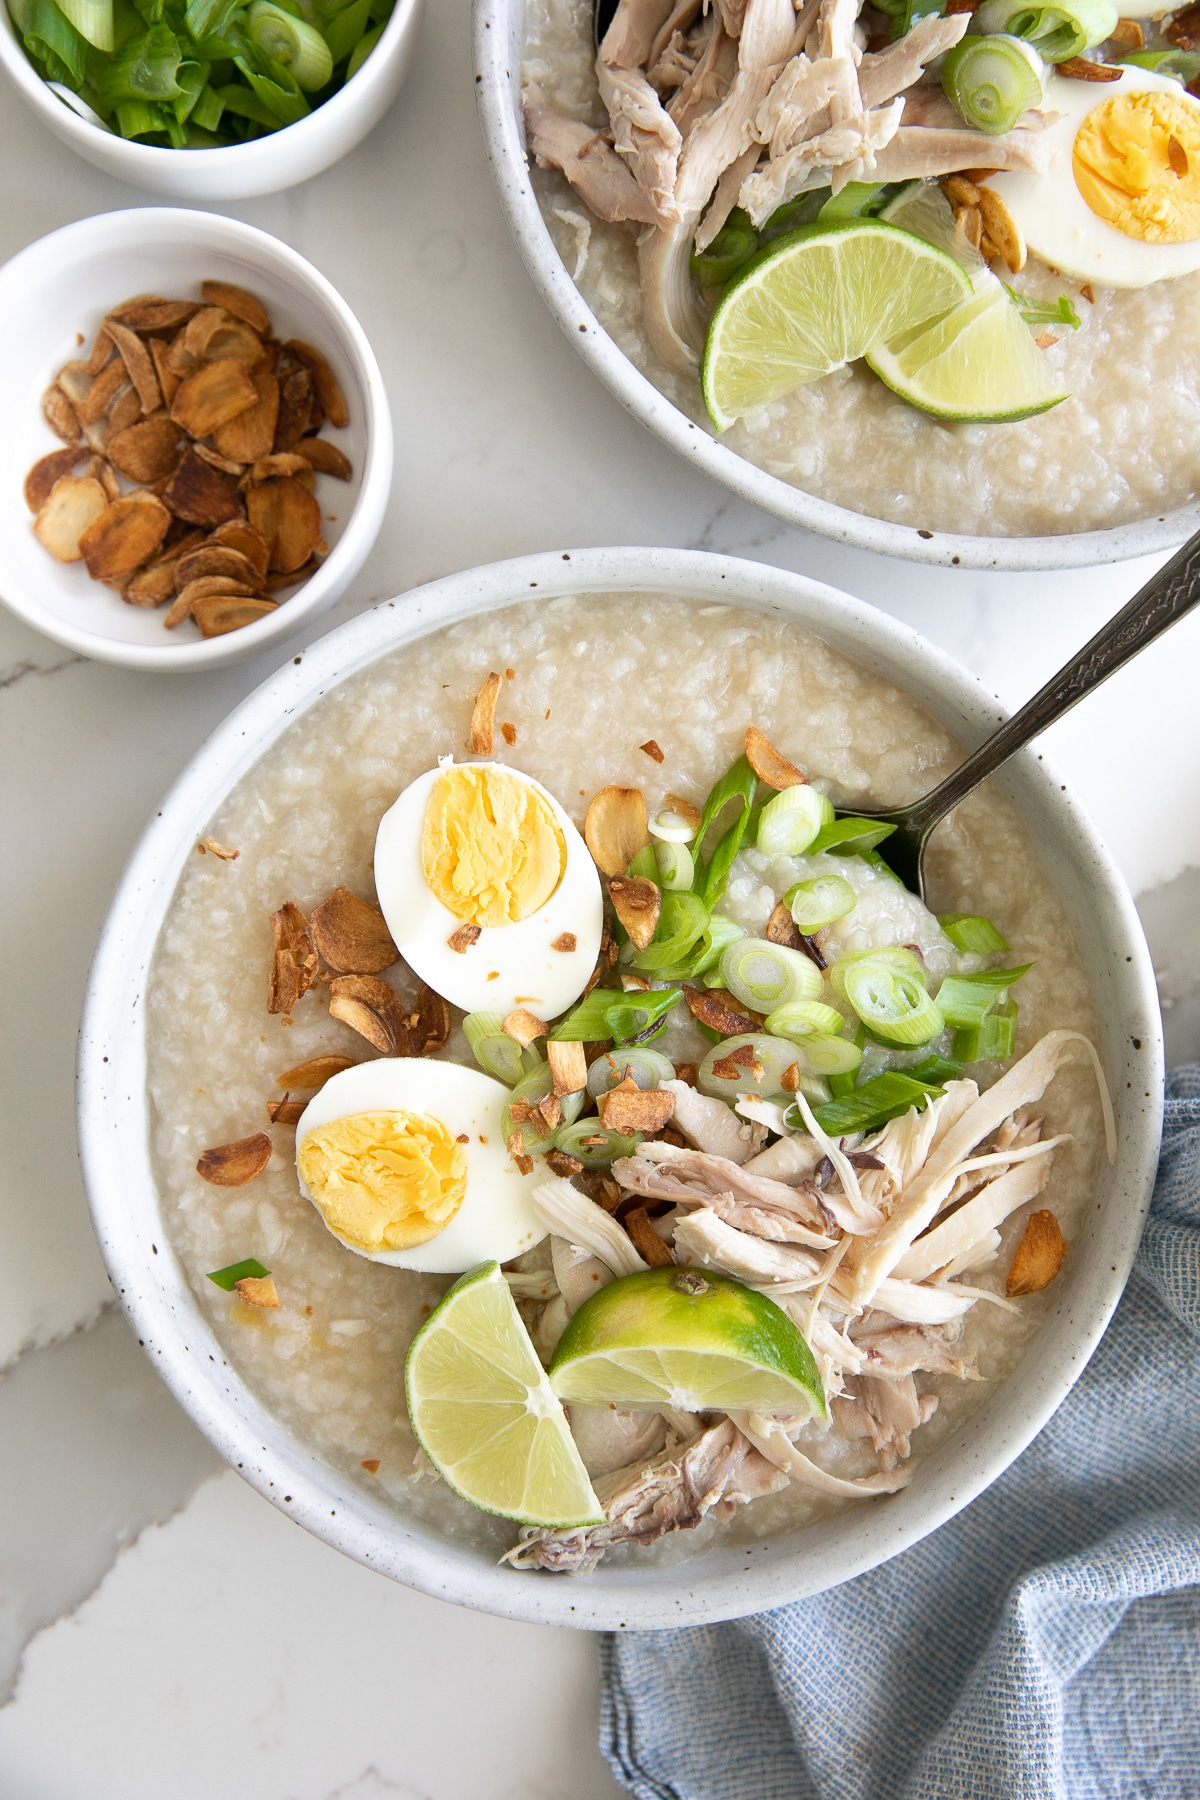 Bowls filled with cooked arroz caldo and garnished with fried garlic, scallions, hard-boiled egg, and shredded chicken.